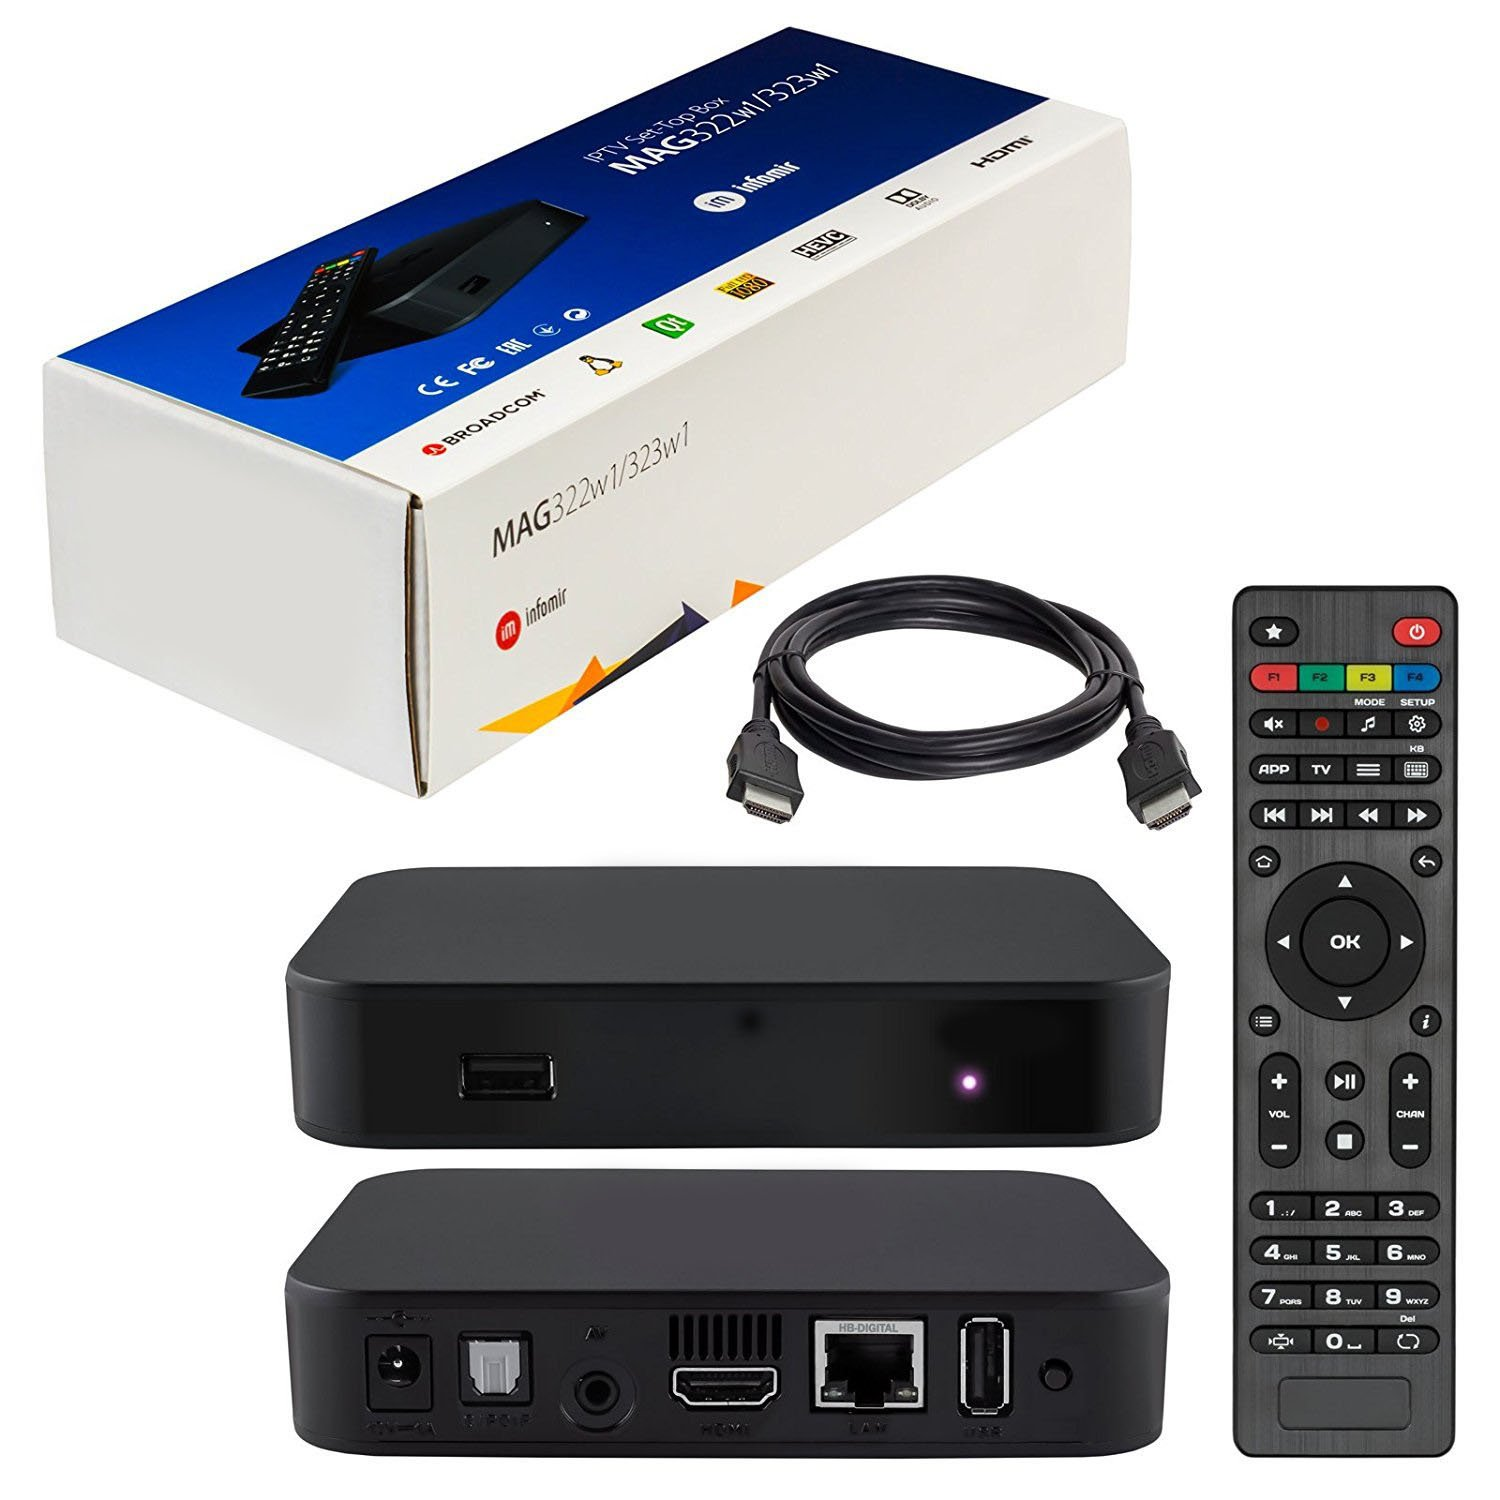 MAG 322 W1 IPTV BOX + IN BUILT WIFI + HDMI CABLE + REMOTE + POWER ADAPTER by MAG322-W1 (Image #1)